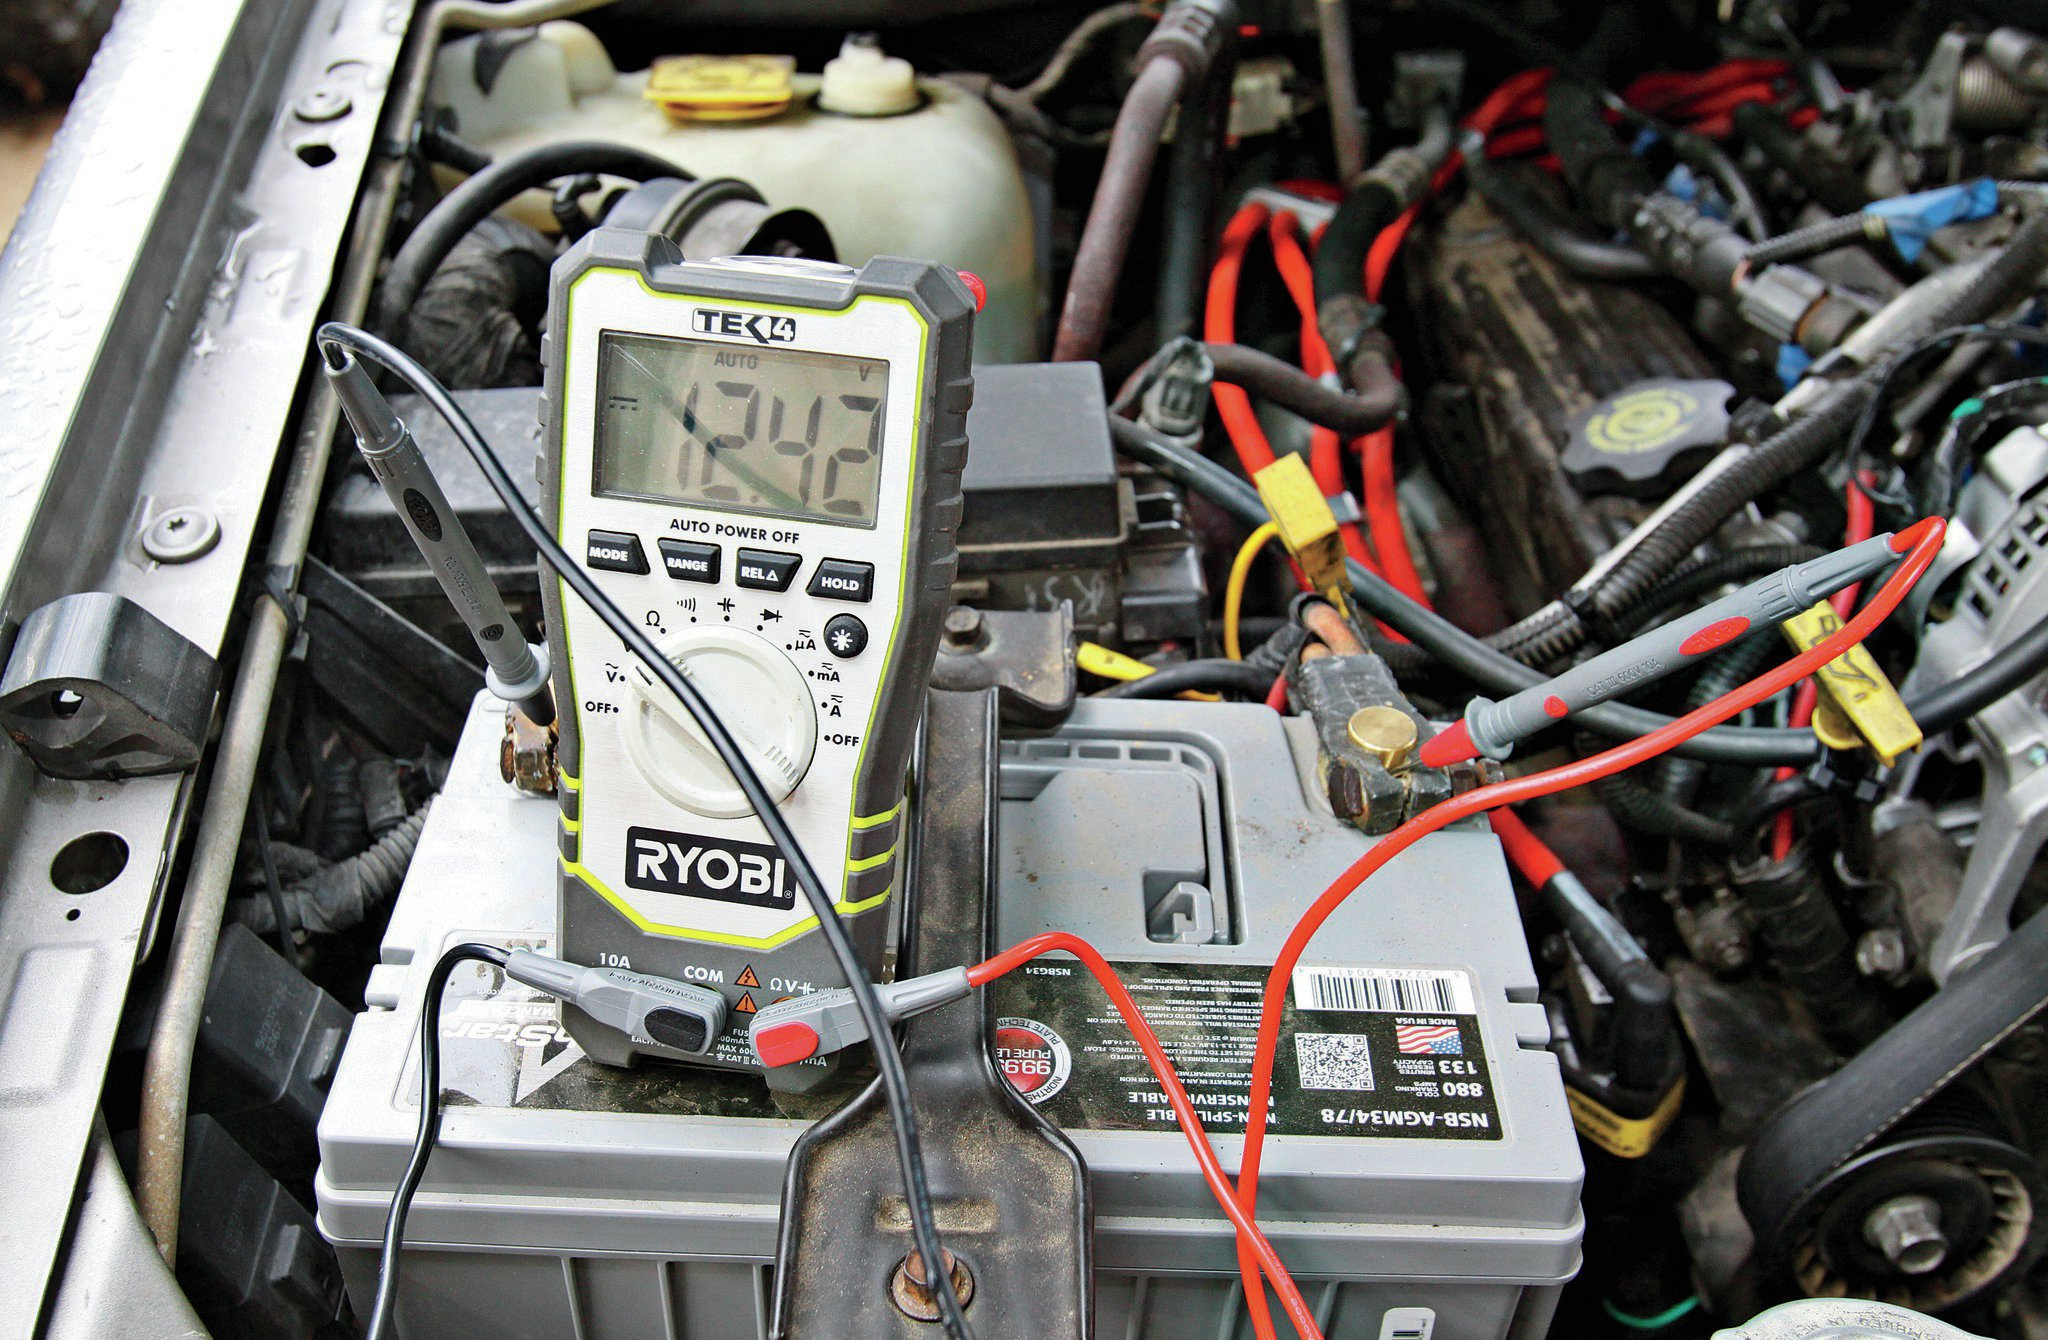 So, when the information center told him check battery, he took his multimeter out of his back pocket and checked it on the side of the road. The voltage read 11.7 V with the engine running. It should read in the mid 14s ideally with the engine on and in the mid 12s with the engine off. Something was wrong in here. It turned out that the alternator was dead. Grand Cherokees are notorious for killing alternators, but this time it was Trasborg's fault, not the Jeep's.